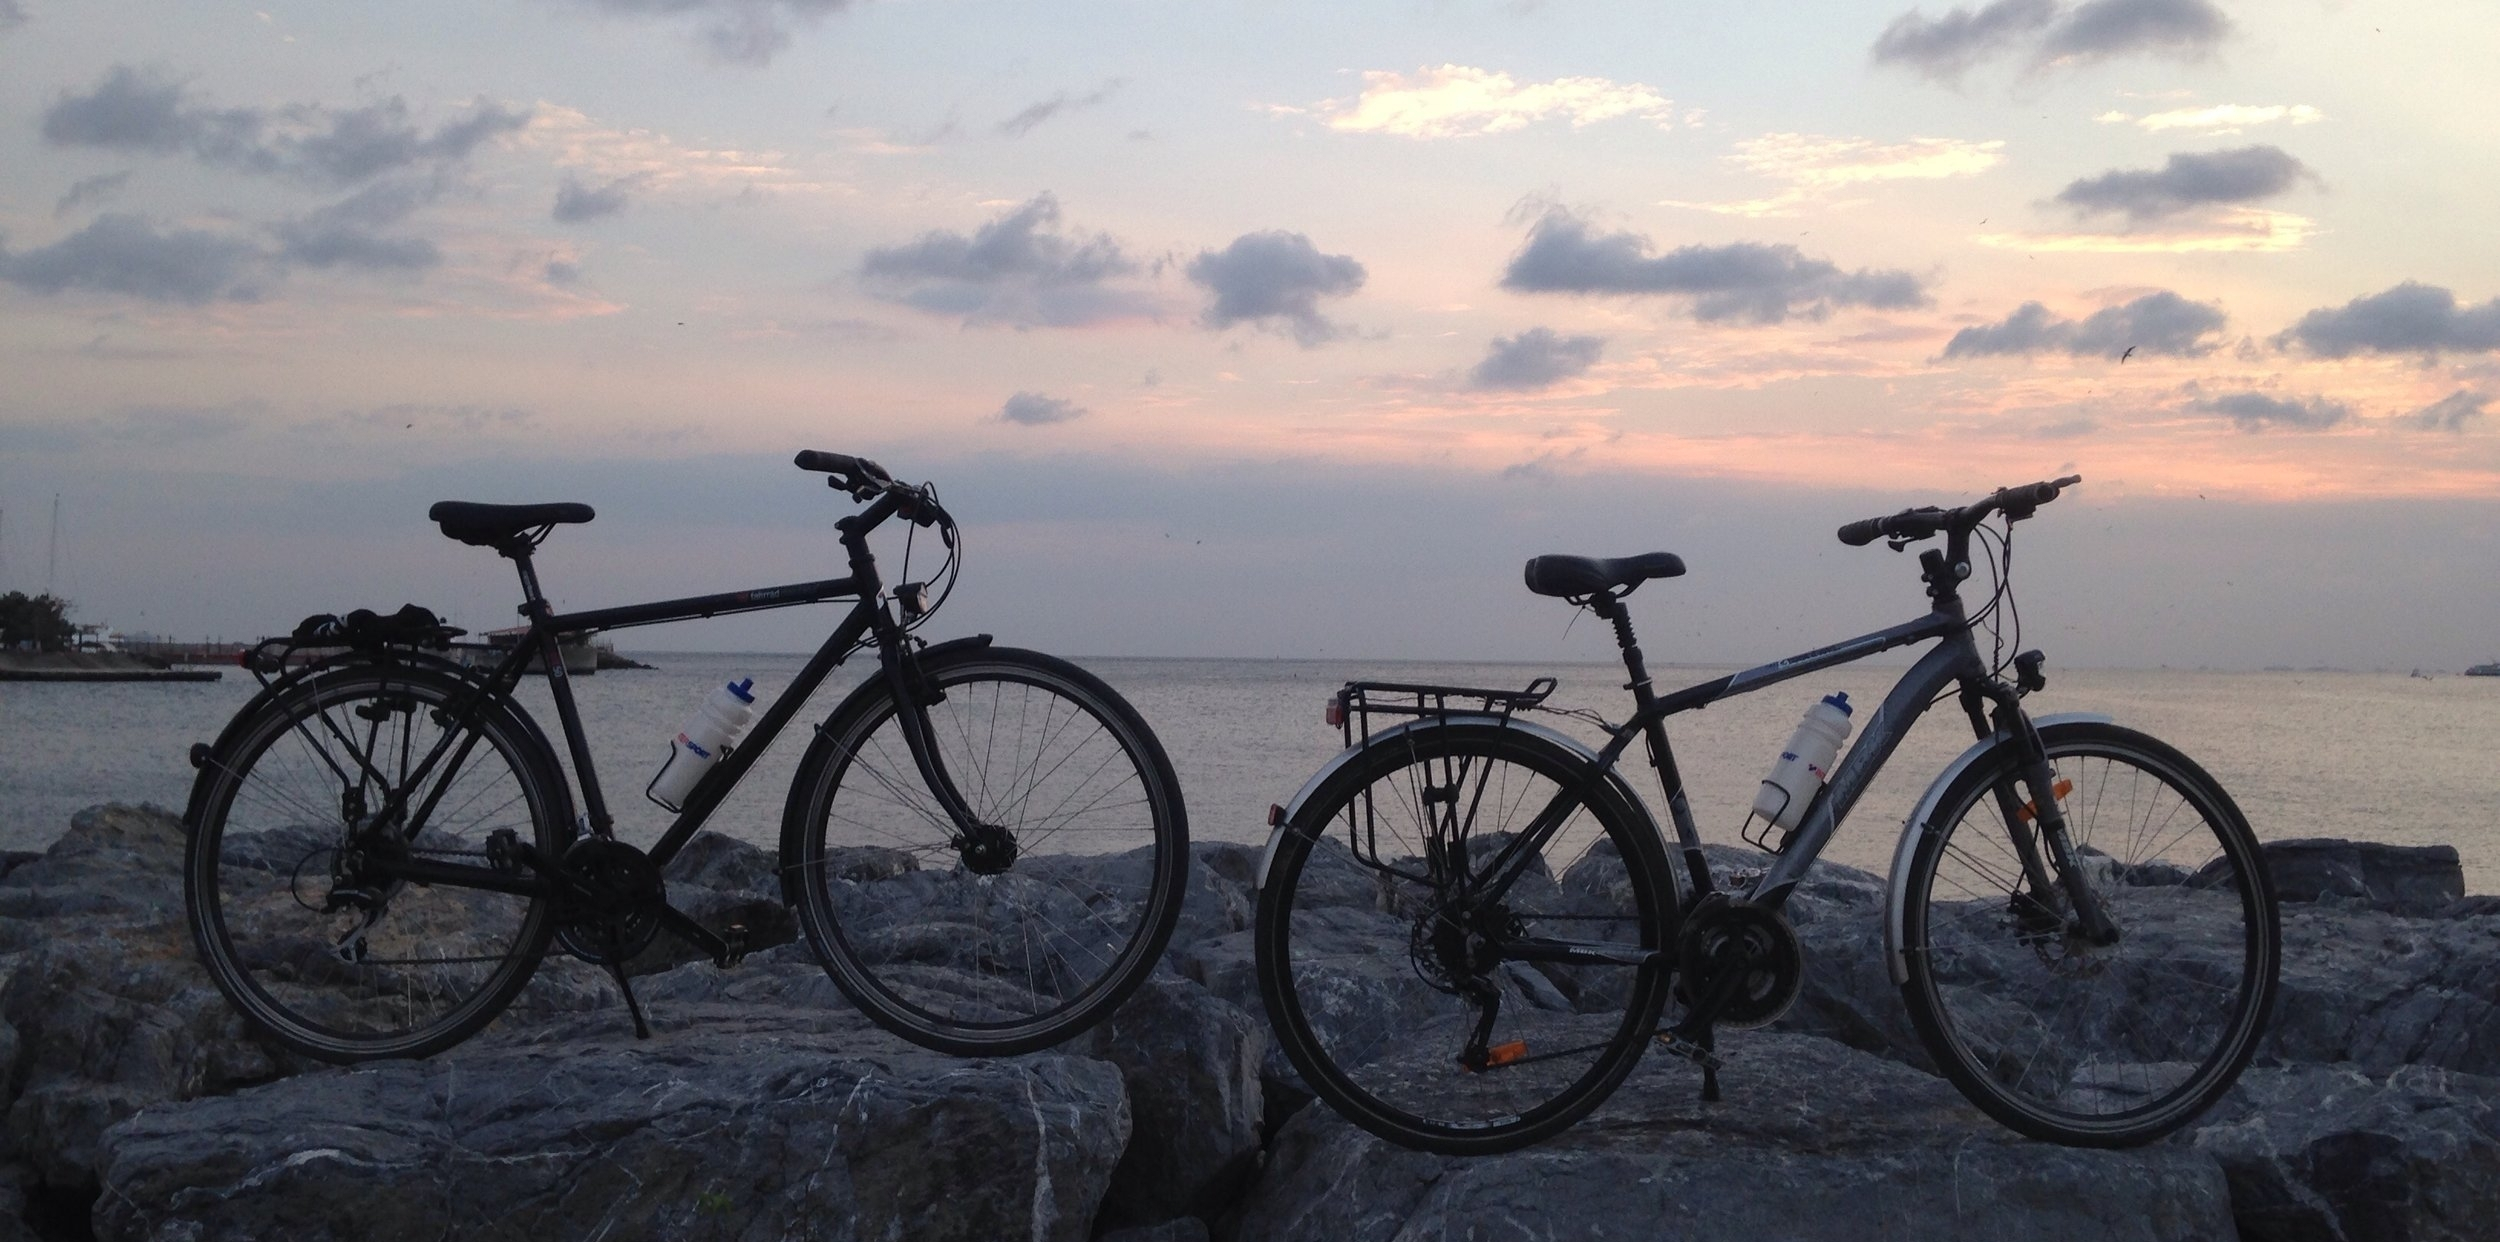 Our trusty steeds enjoying a day off in İstanbul: Ben´s on the left and Manon´s on the right.